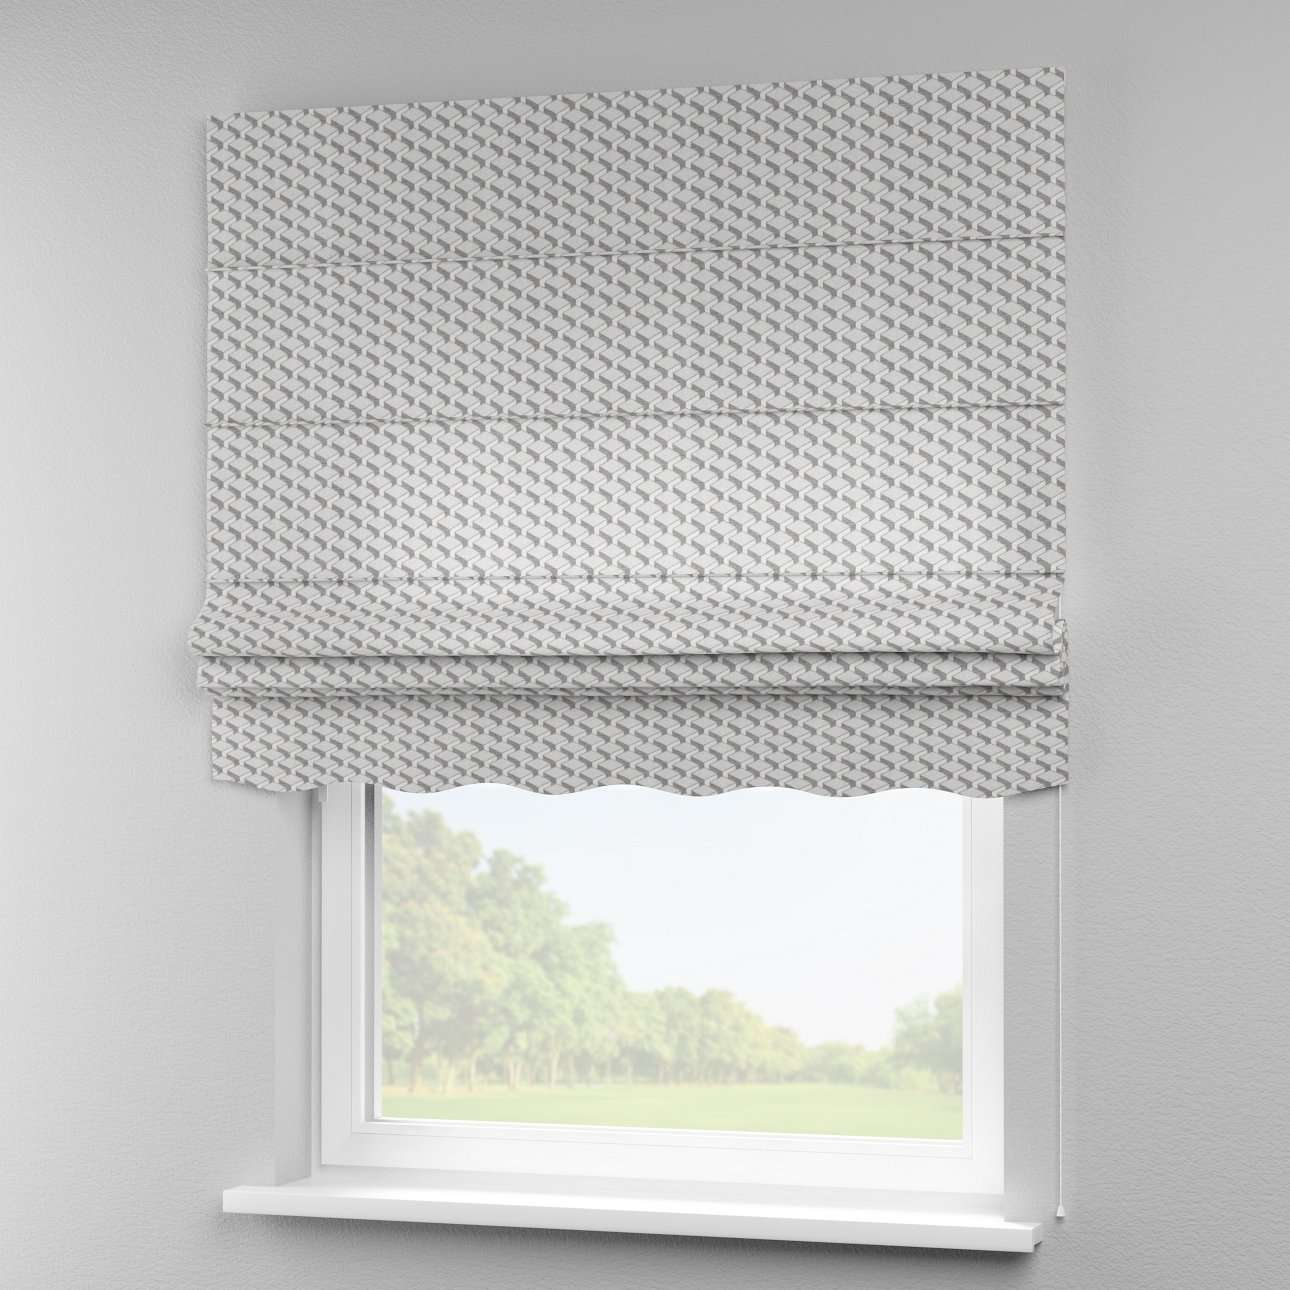 Florence roman blind  80 × 170 cm (31.5 × 67 inch) in collection Rustica, fabric: 138-18